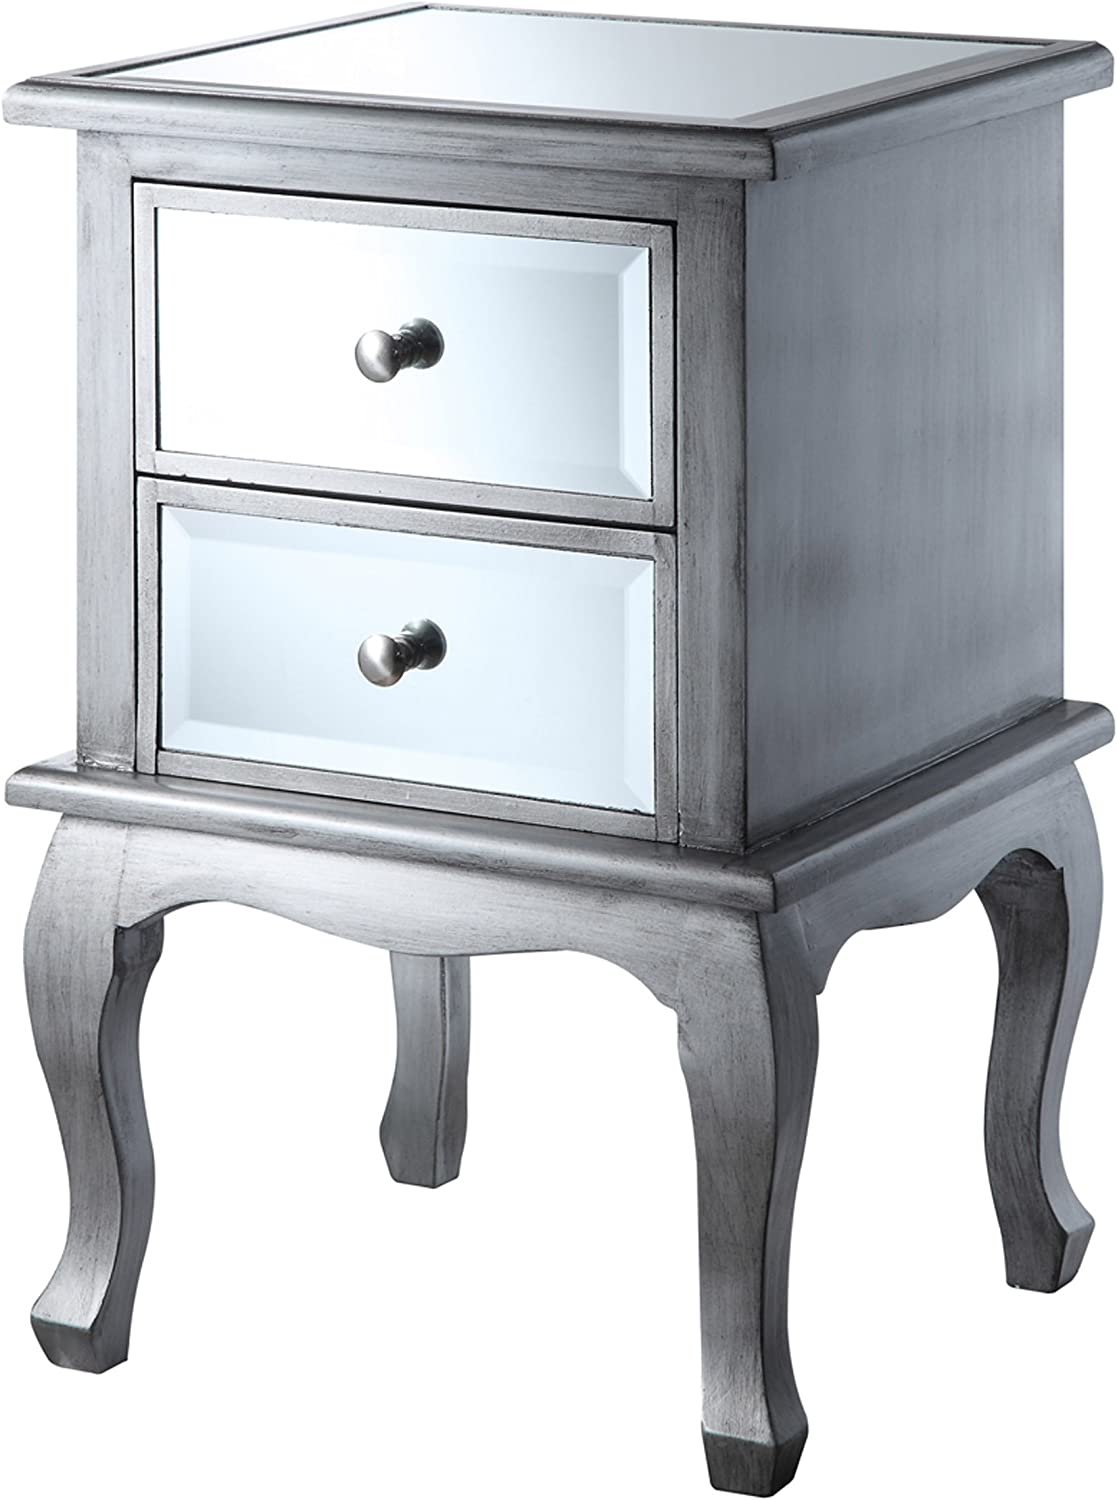 Convenience Concepts gold Coast Collection Queen Anne Mirrored End Table, Silver